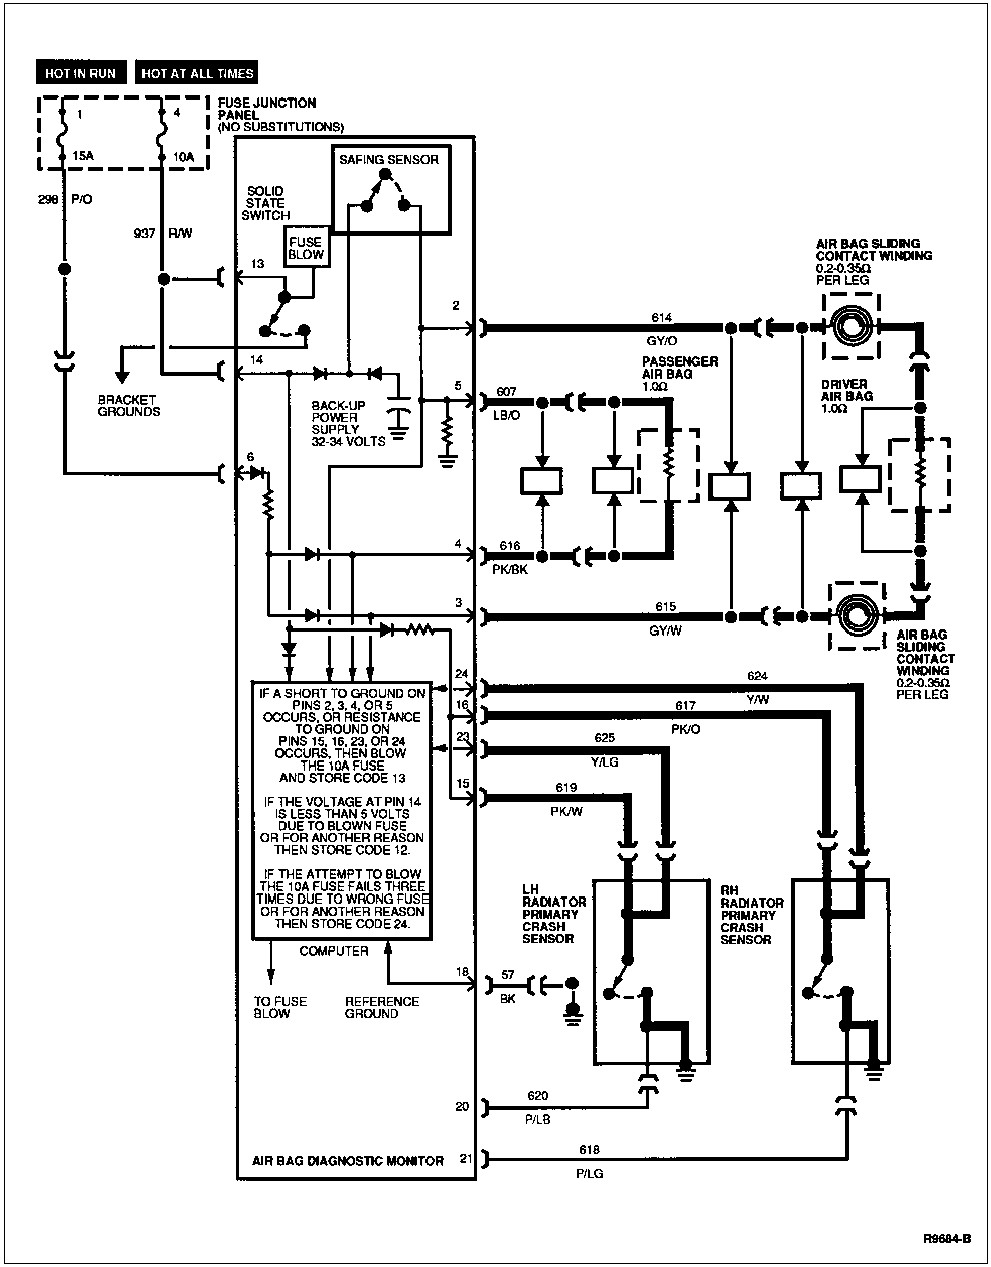 medium resolution of ford mustang airbag code 13 2010 mustang fuse box location 1966 mustang diagram